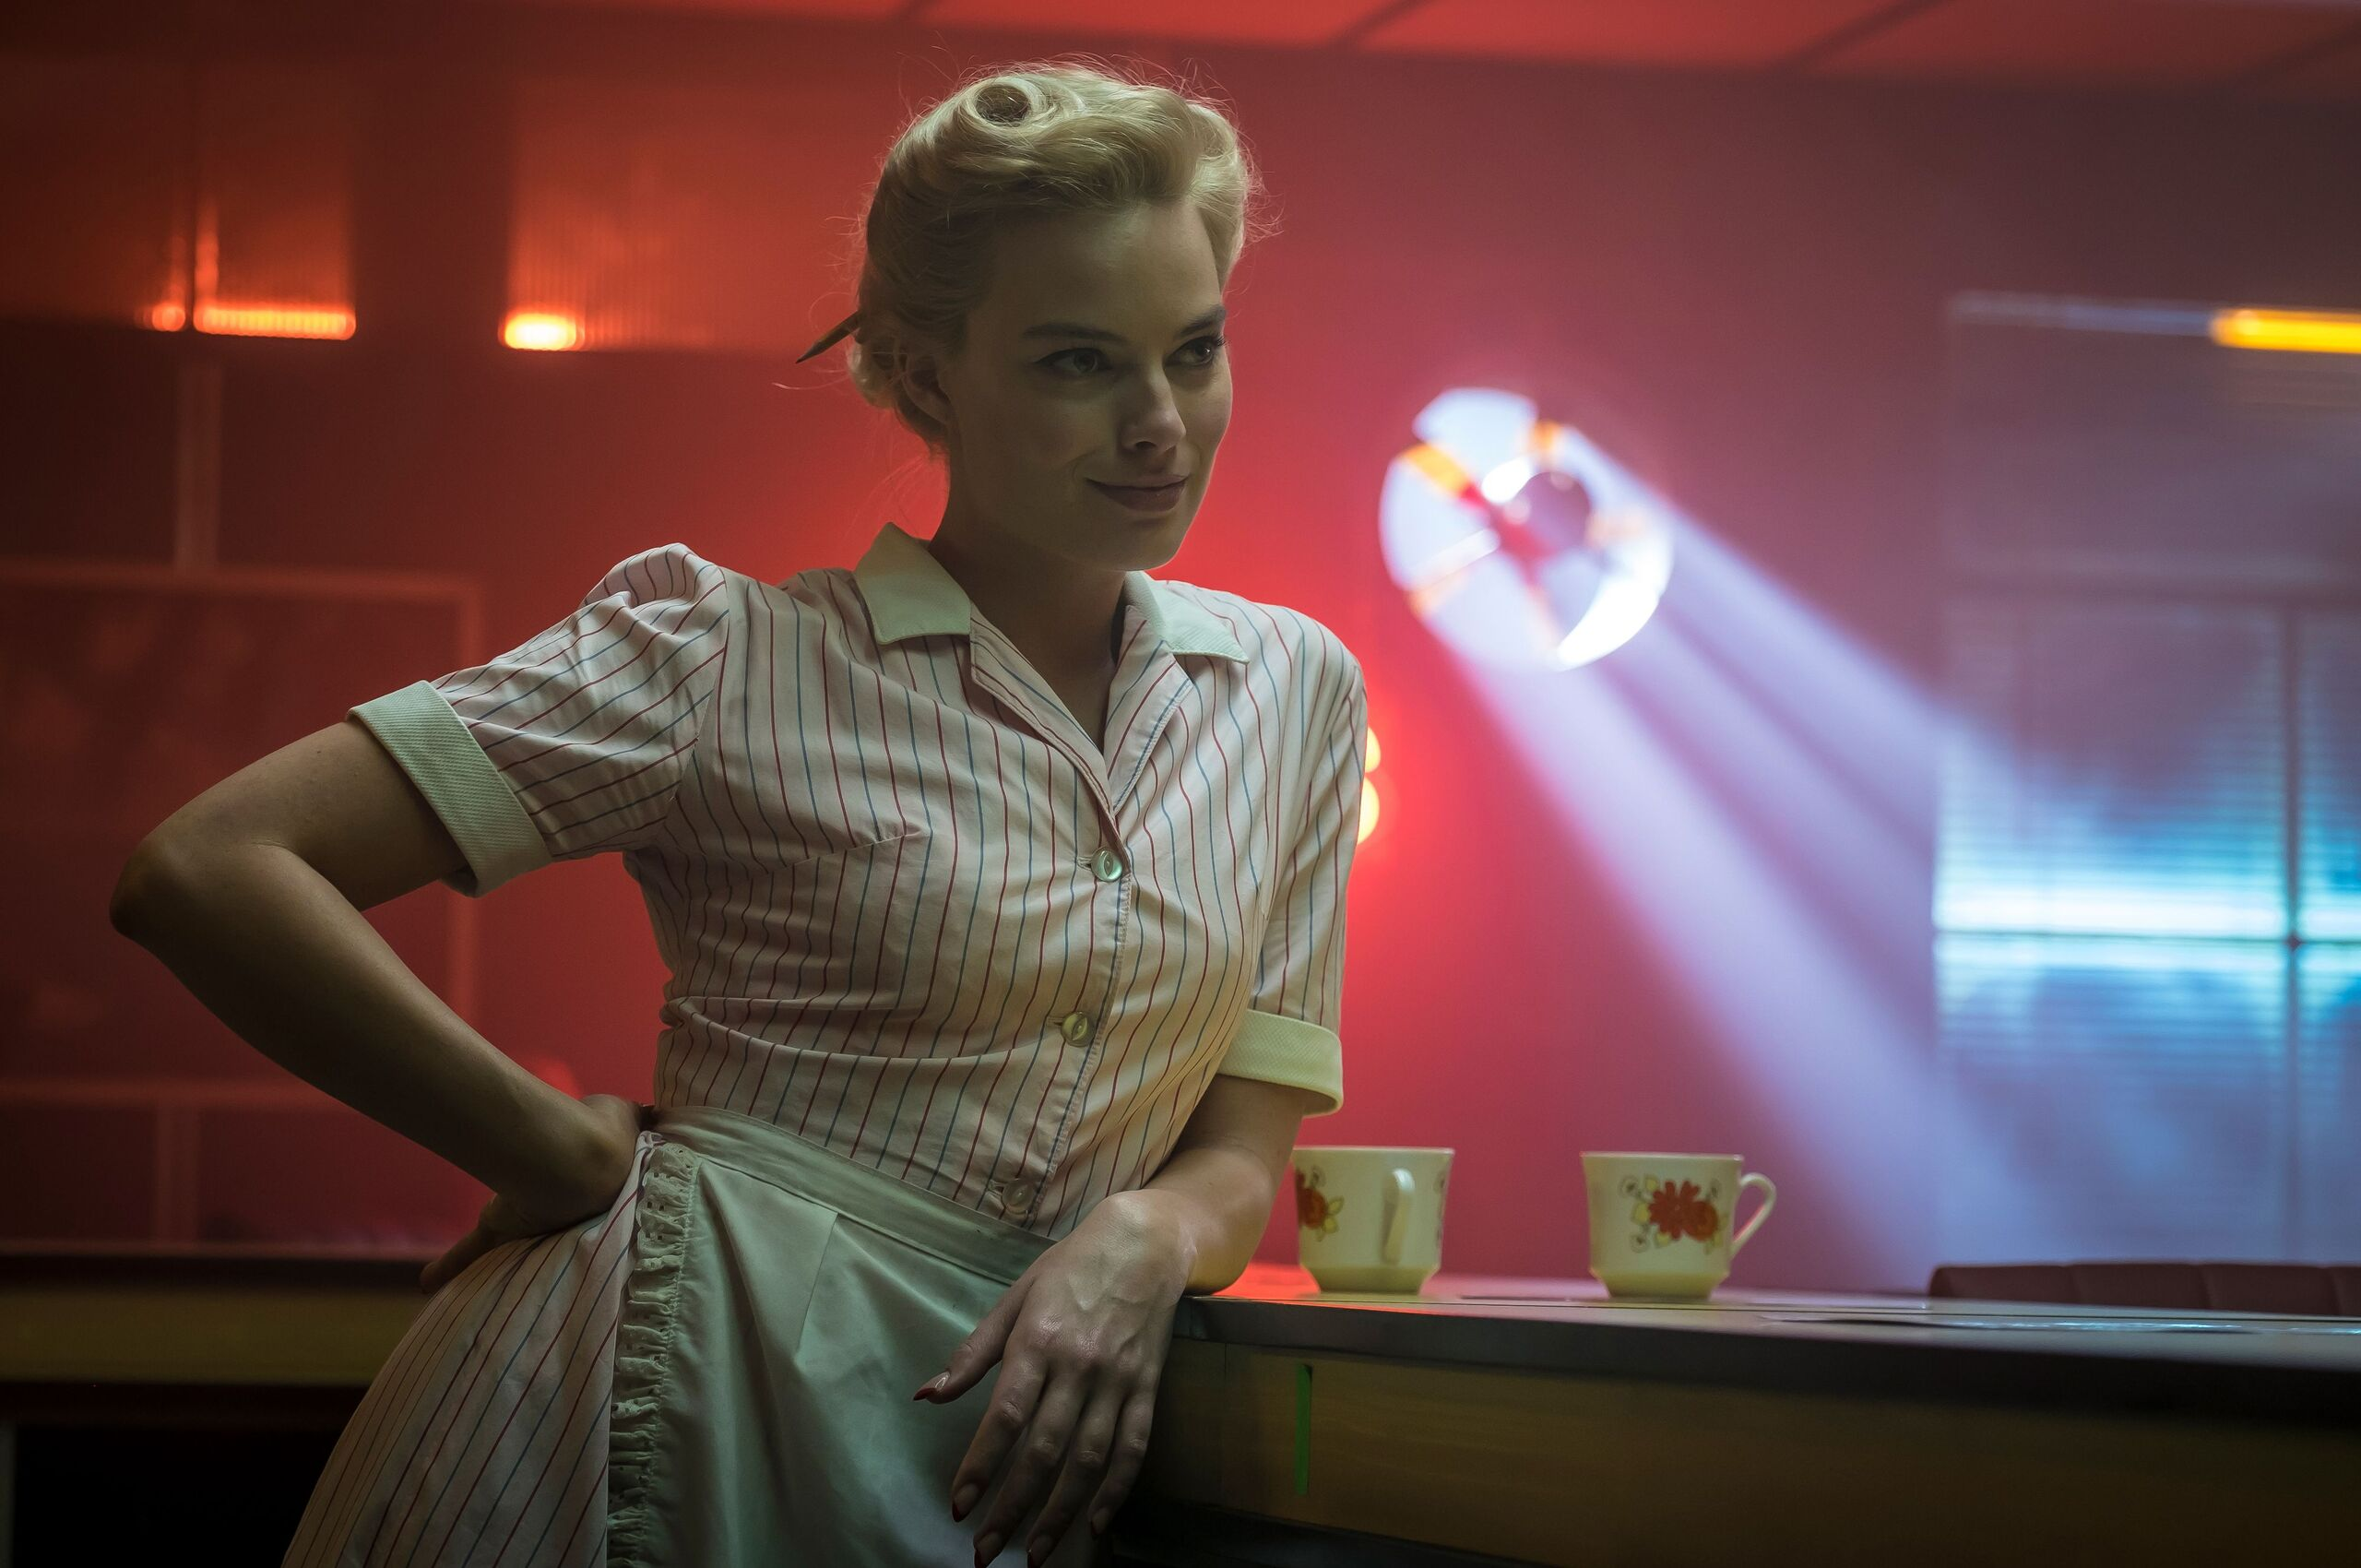 margot-robbie-in-terminal-movie-xj.jpg